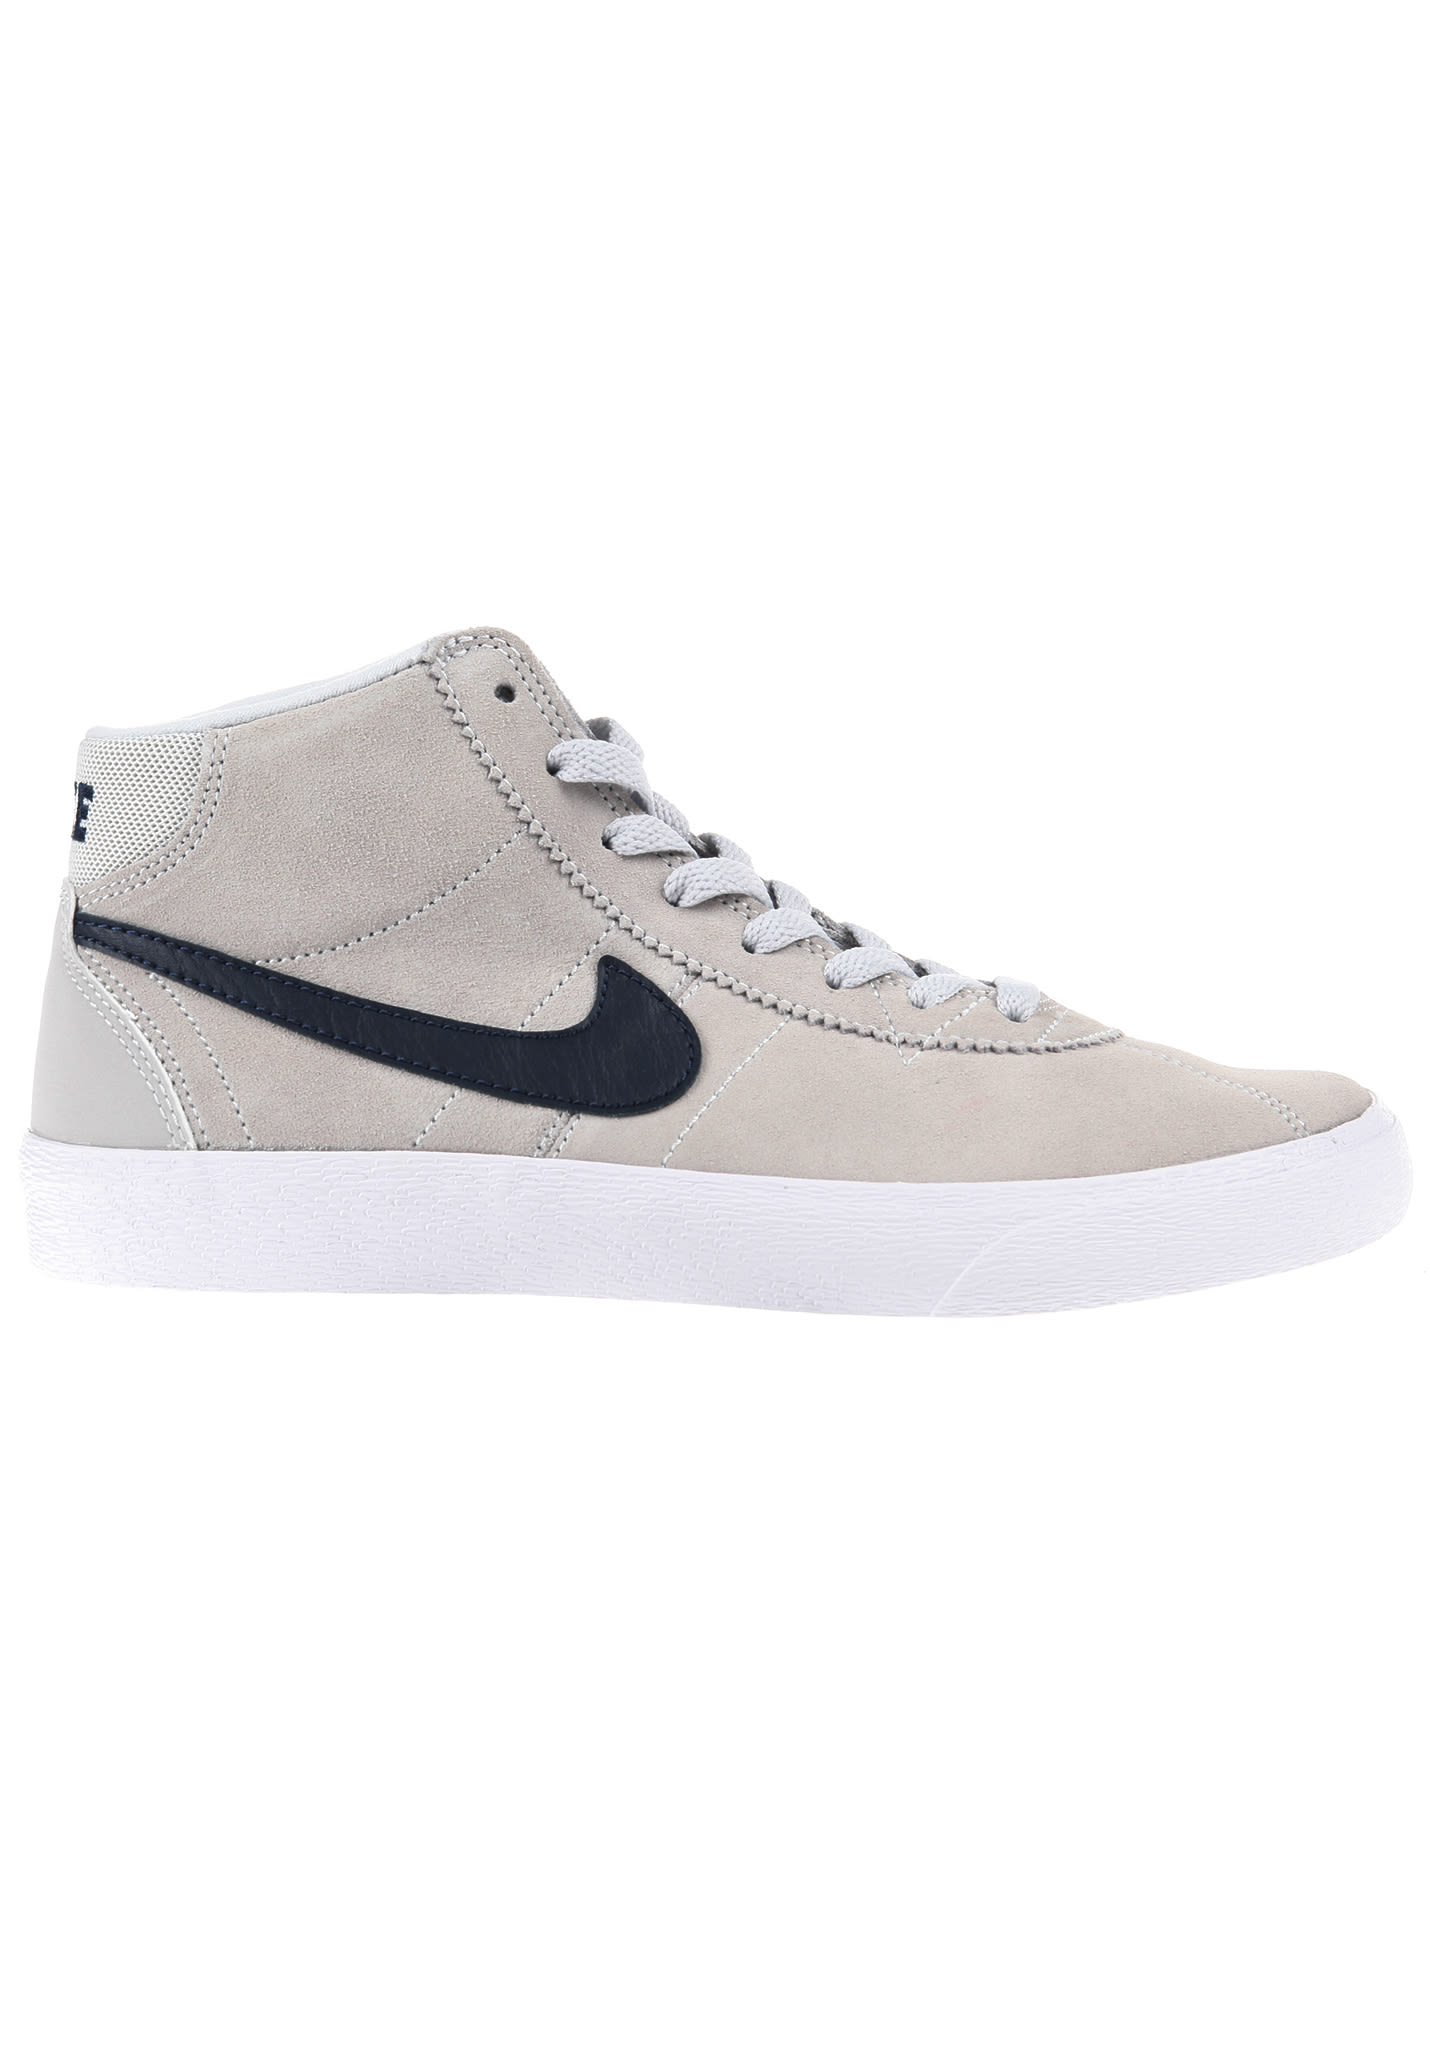 competitive price c6176 c6385 NIKE SB Bruin Hi - Sneaker für Damen - Beige - Planet Sports